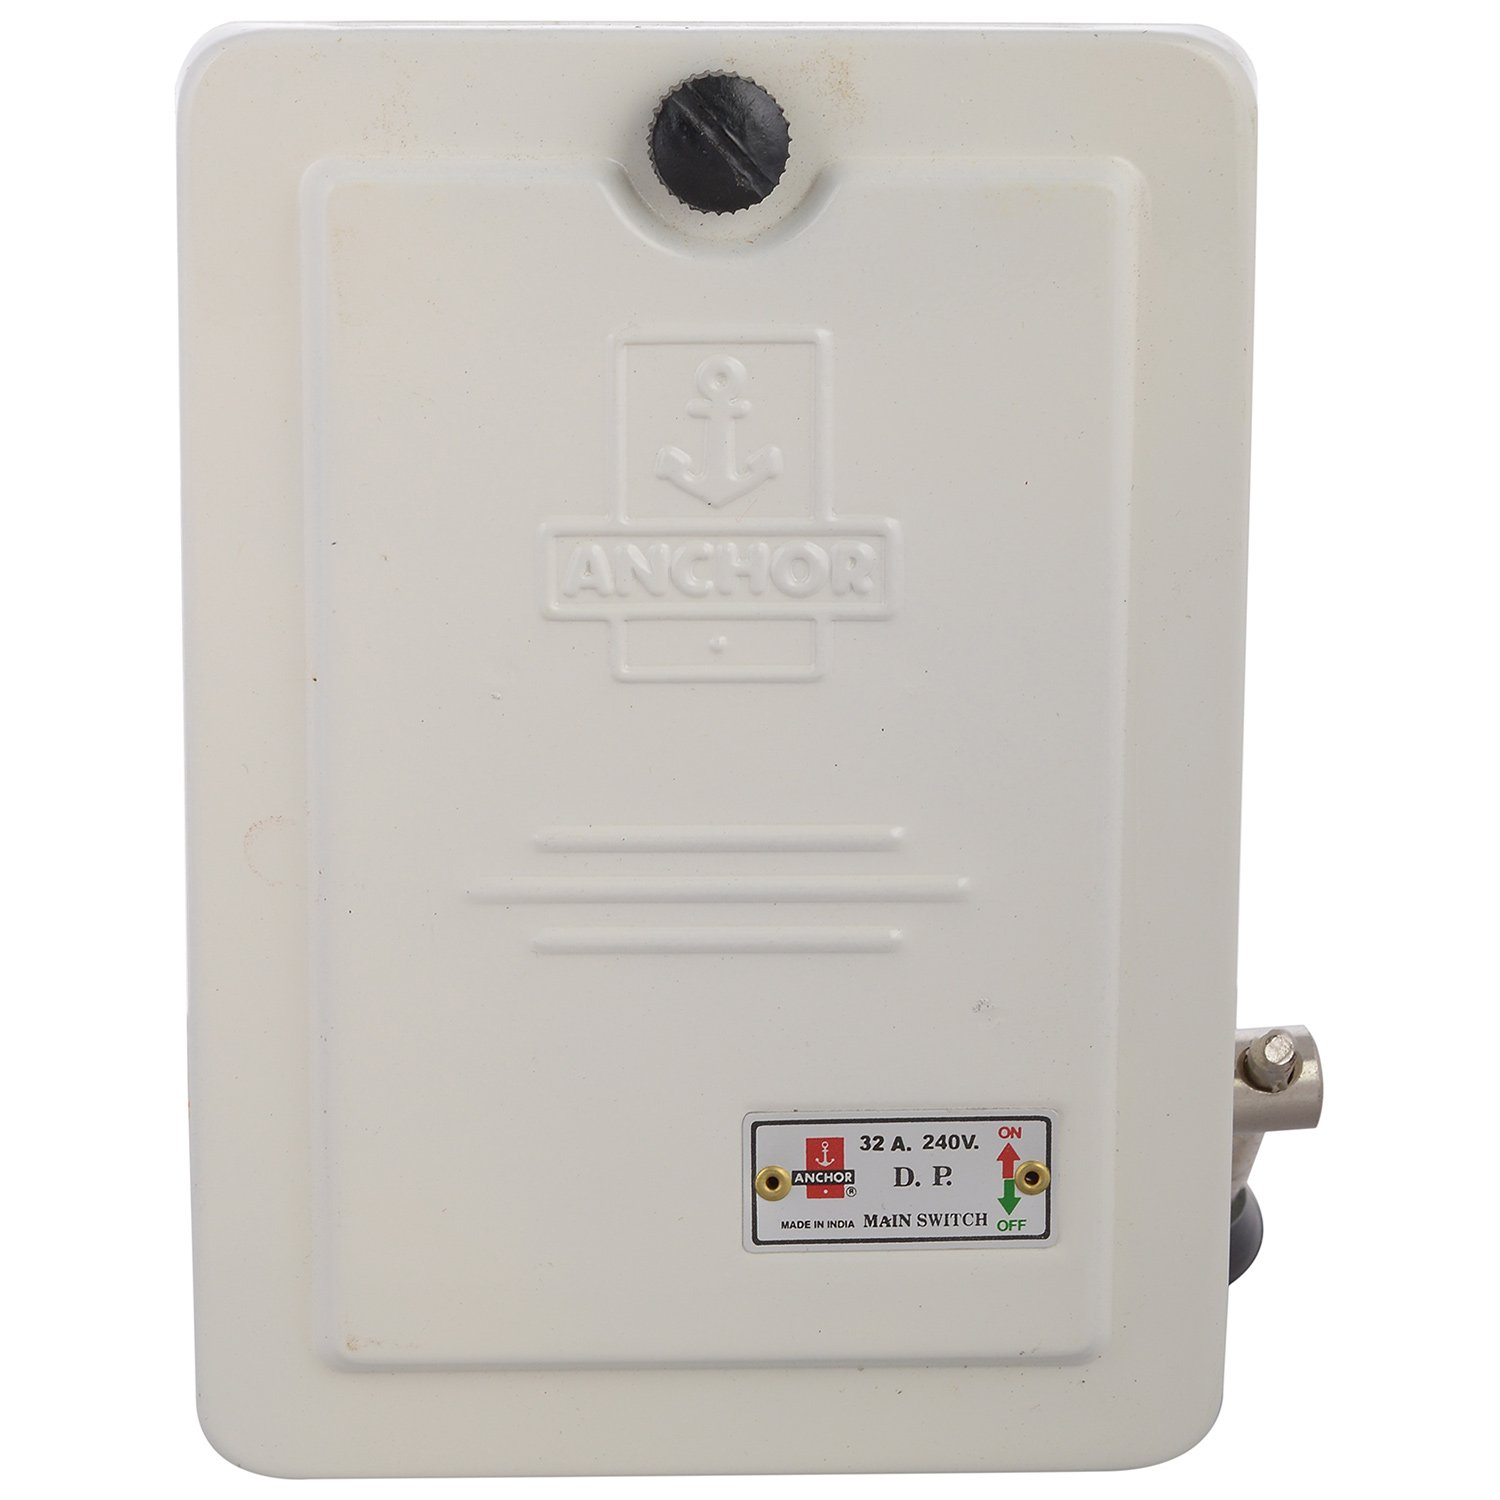 Anchor 17626 Main Switch Dp 32 Amp 240 V White Home 100 Fuse Electrical Box Improvement